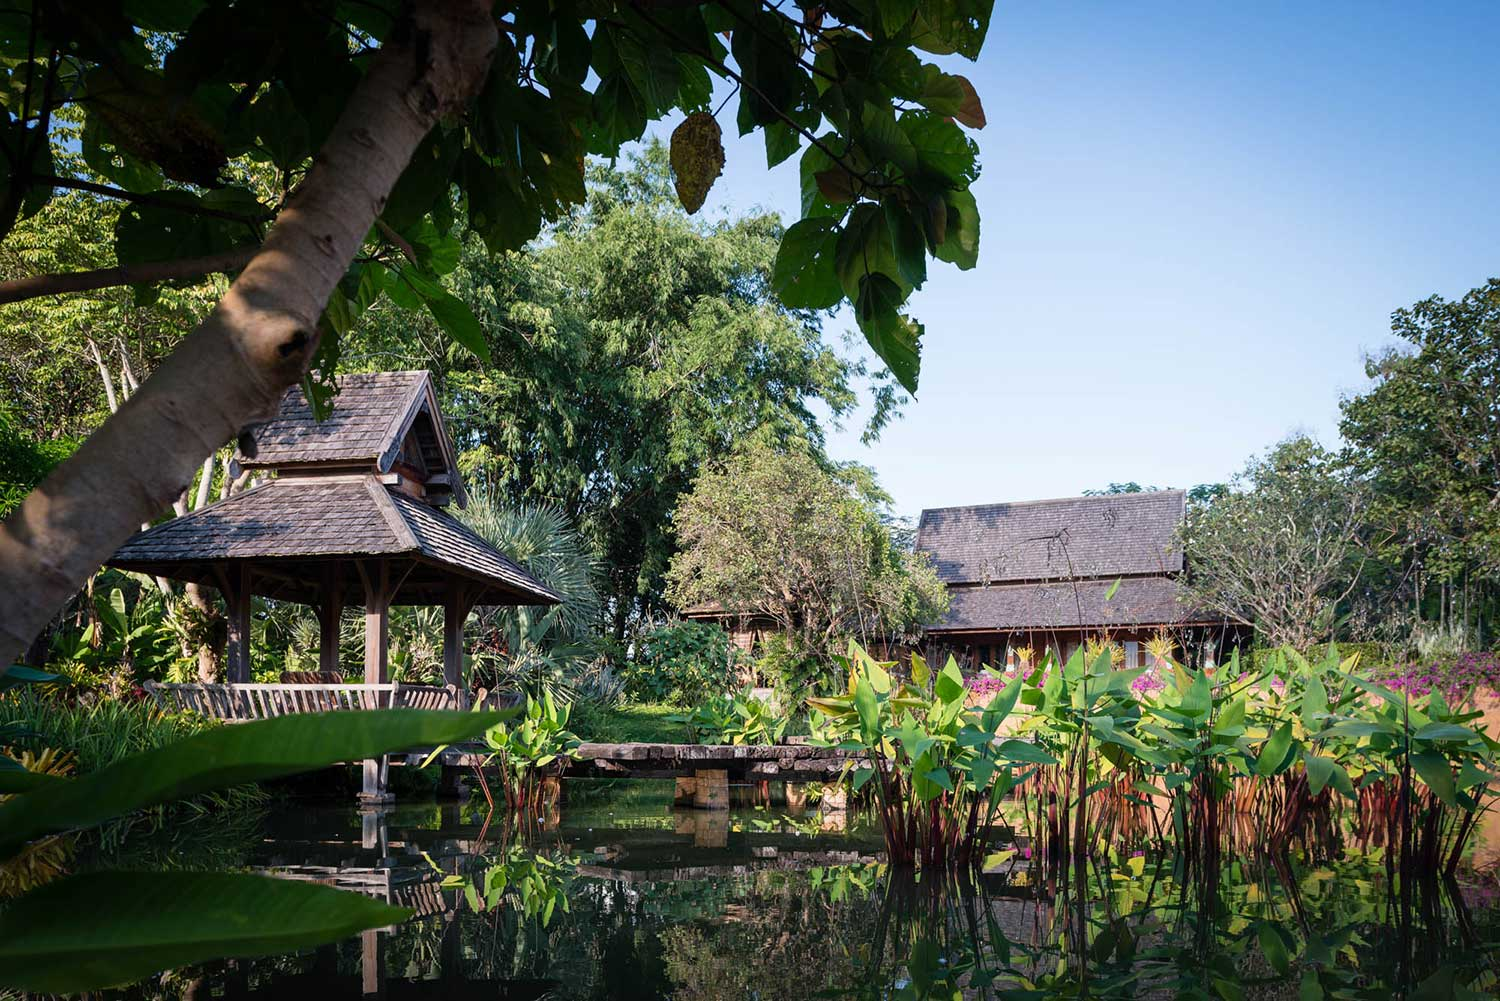 Chiang Mai resorts 5 star